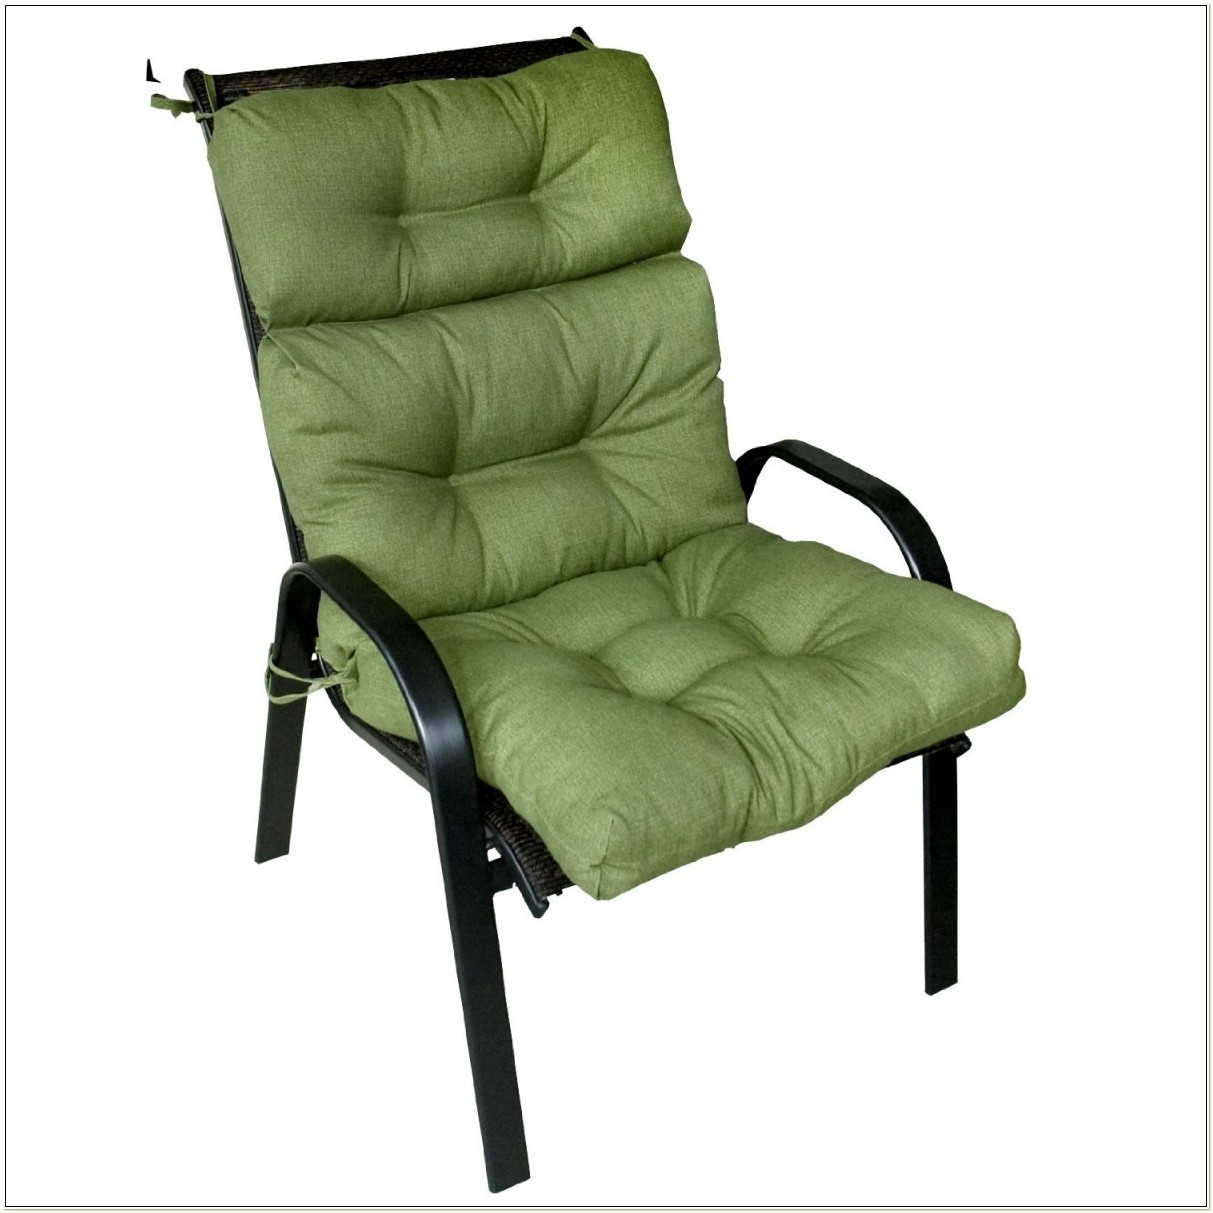 Outdoor Chair Replacement Cushions Australia